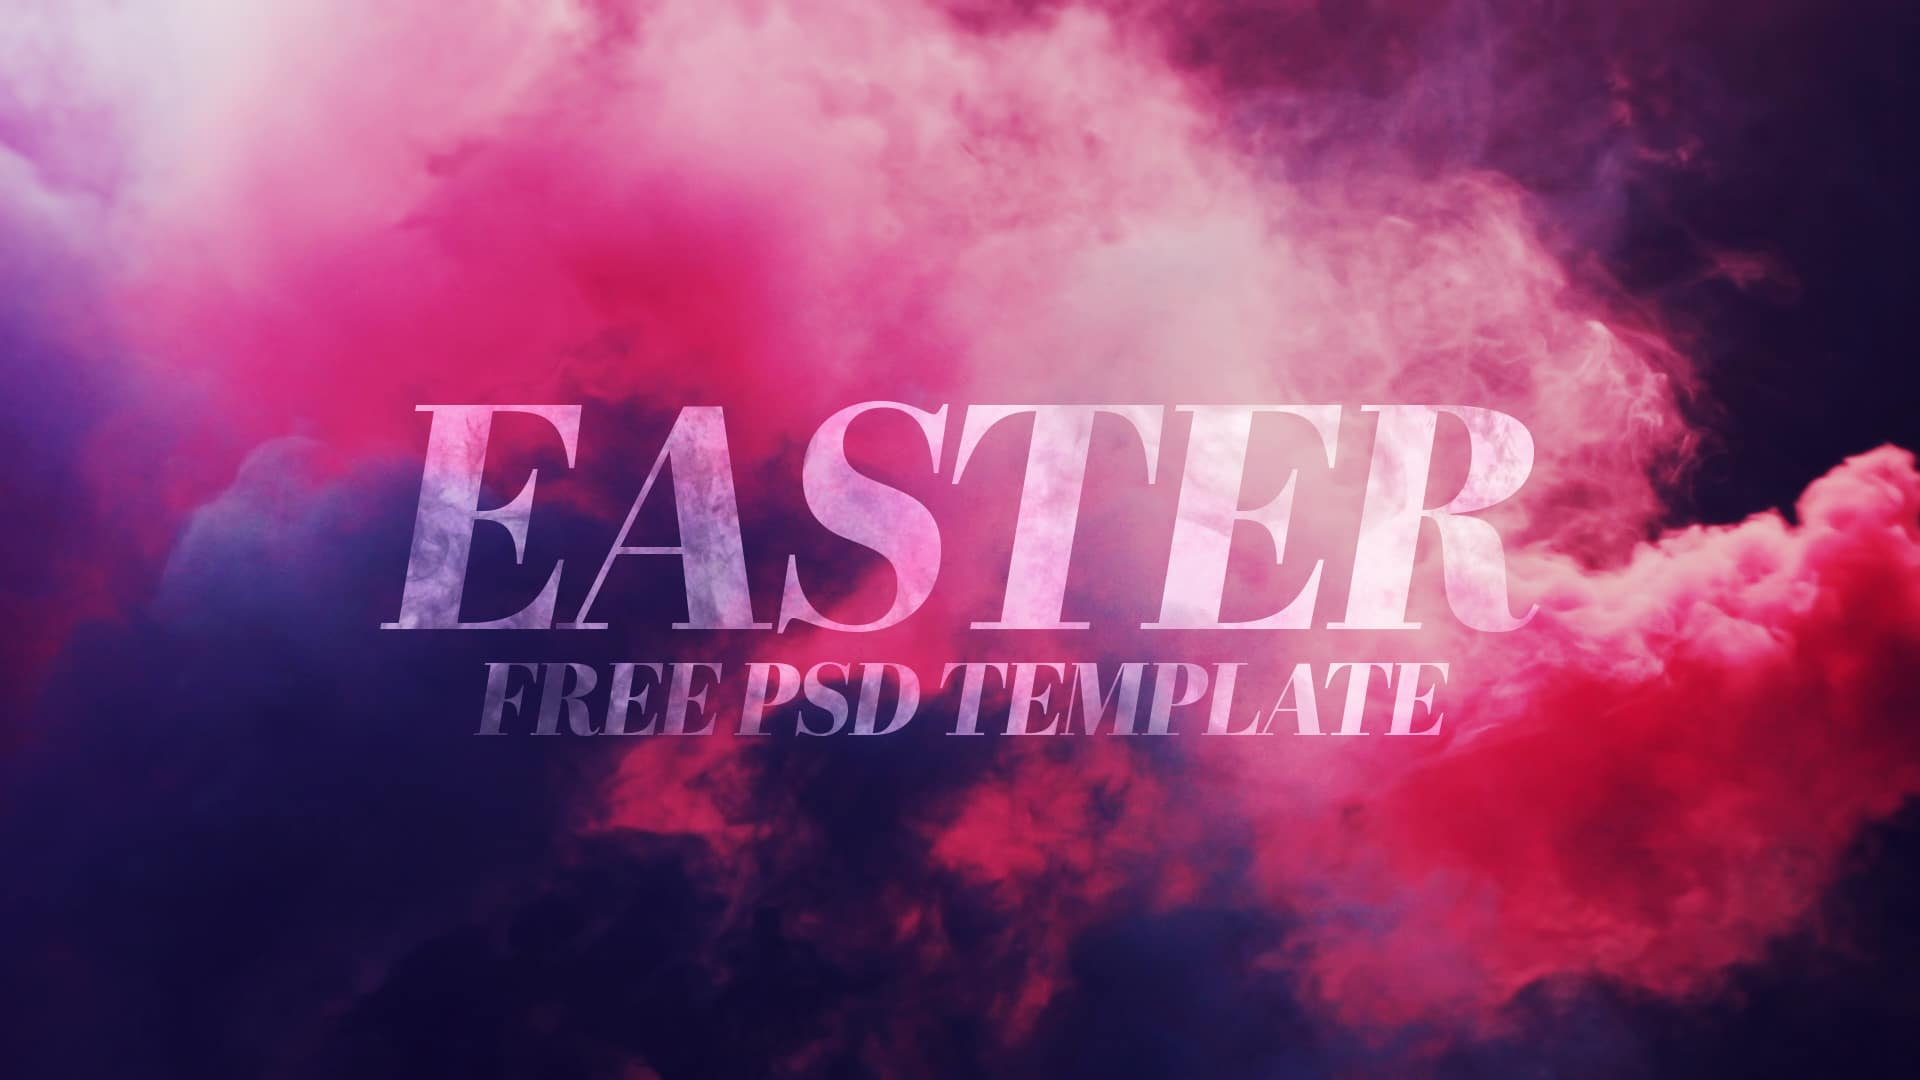 We Are Excited To Be Releasing The New Easter 2016 CMG Mega Pack On March 1st It Will Full Of Colored Smoke Moving Backgrounds And Still Graphics